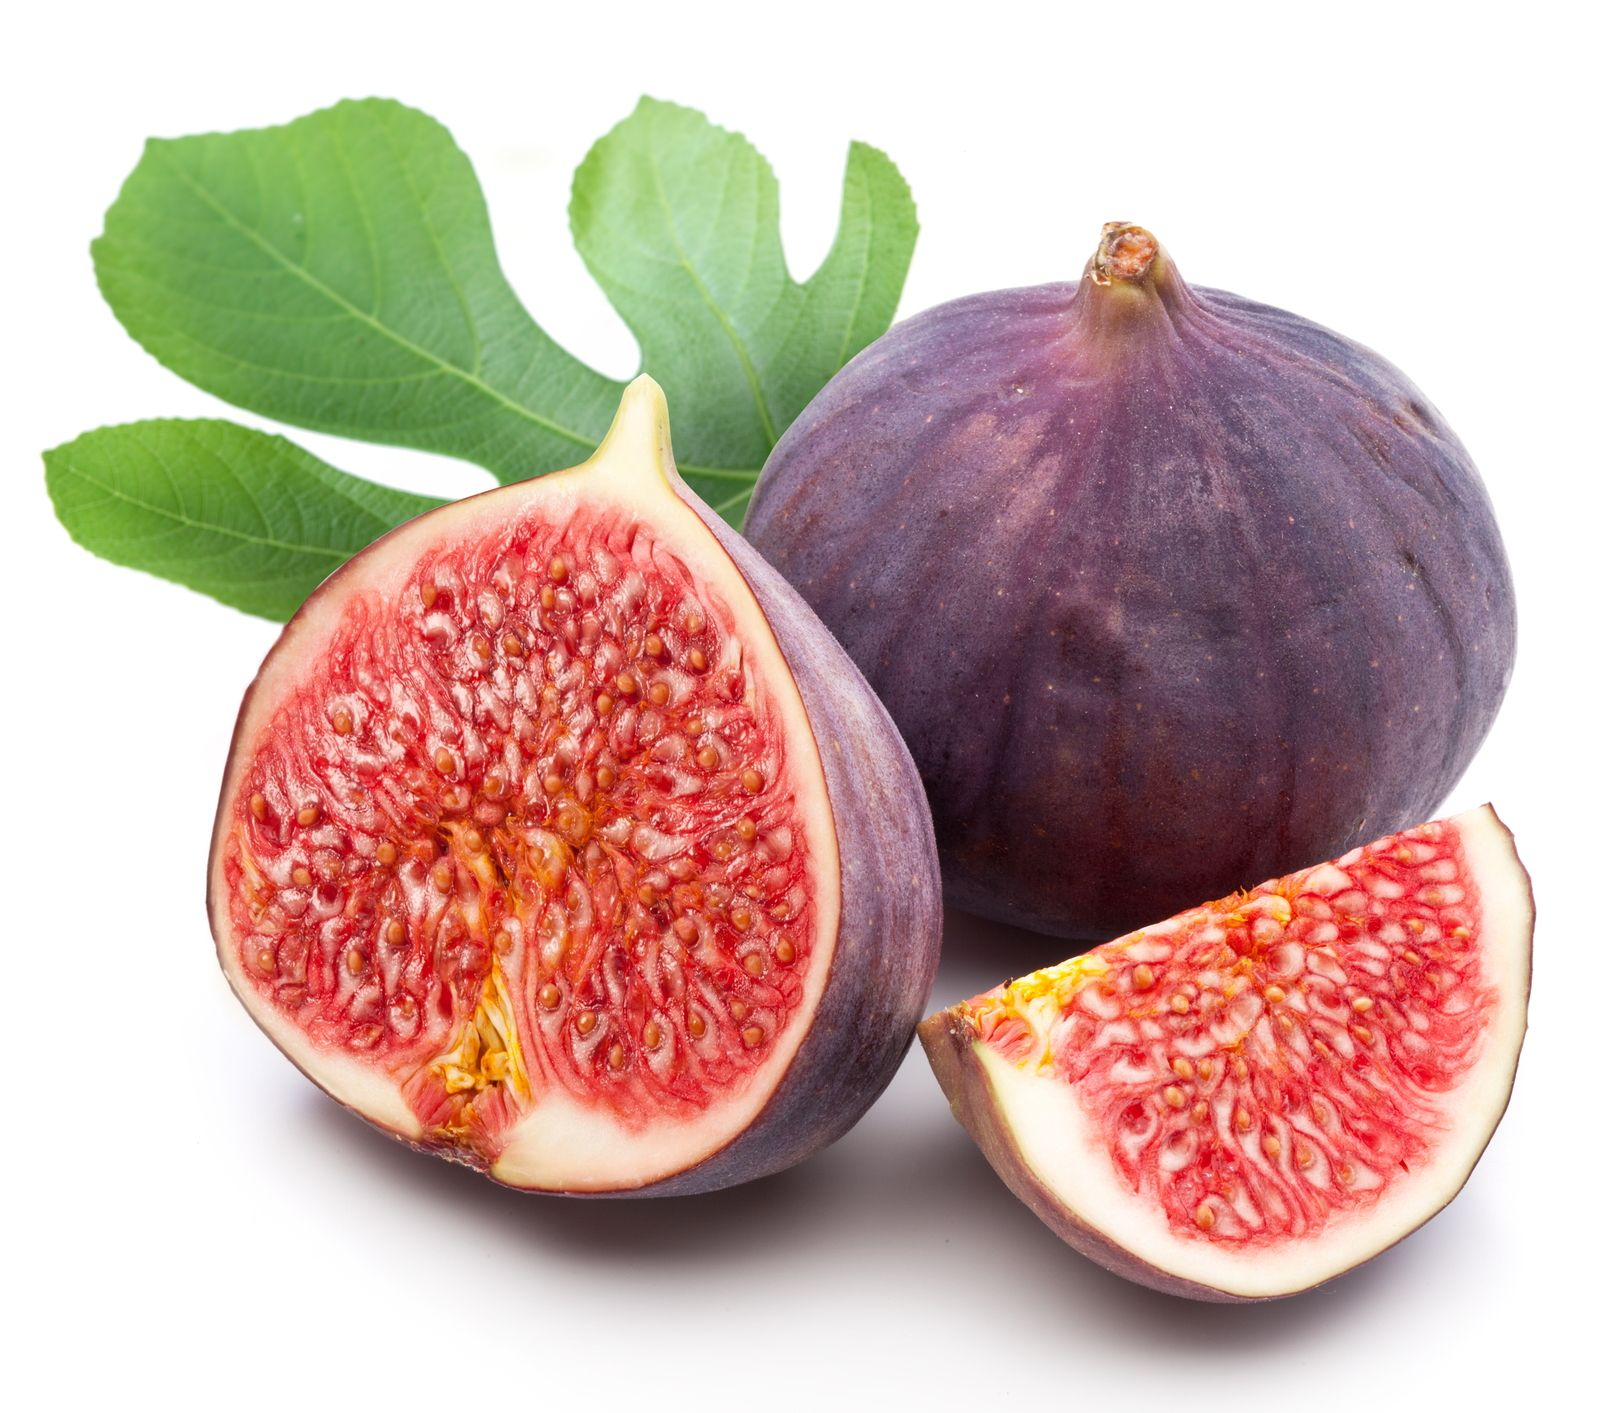 Nothing stops it from producing tons of purple figs The figs are sweet and juicy with crunchy seeds